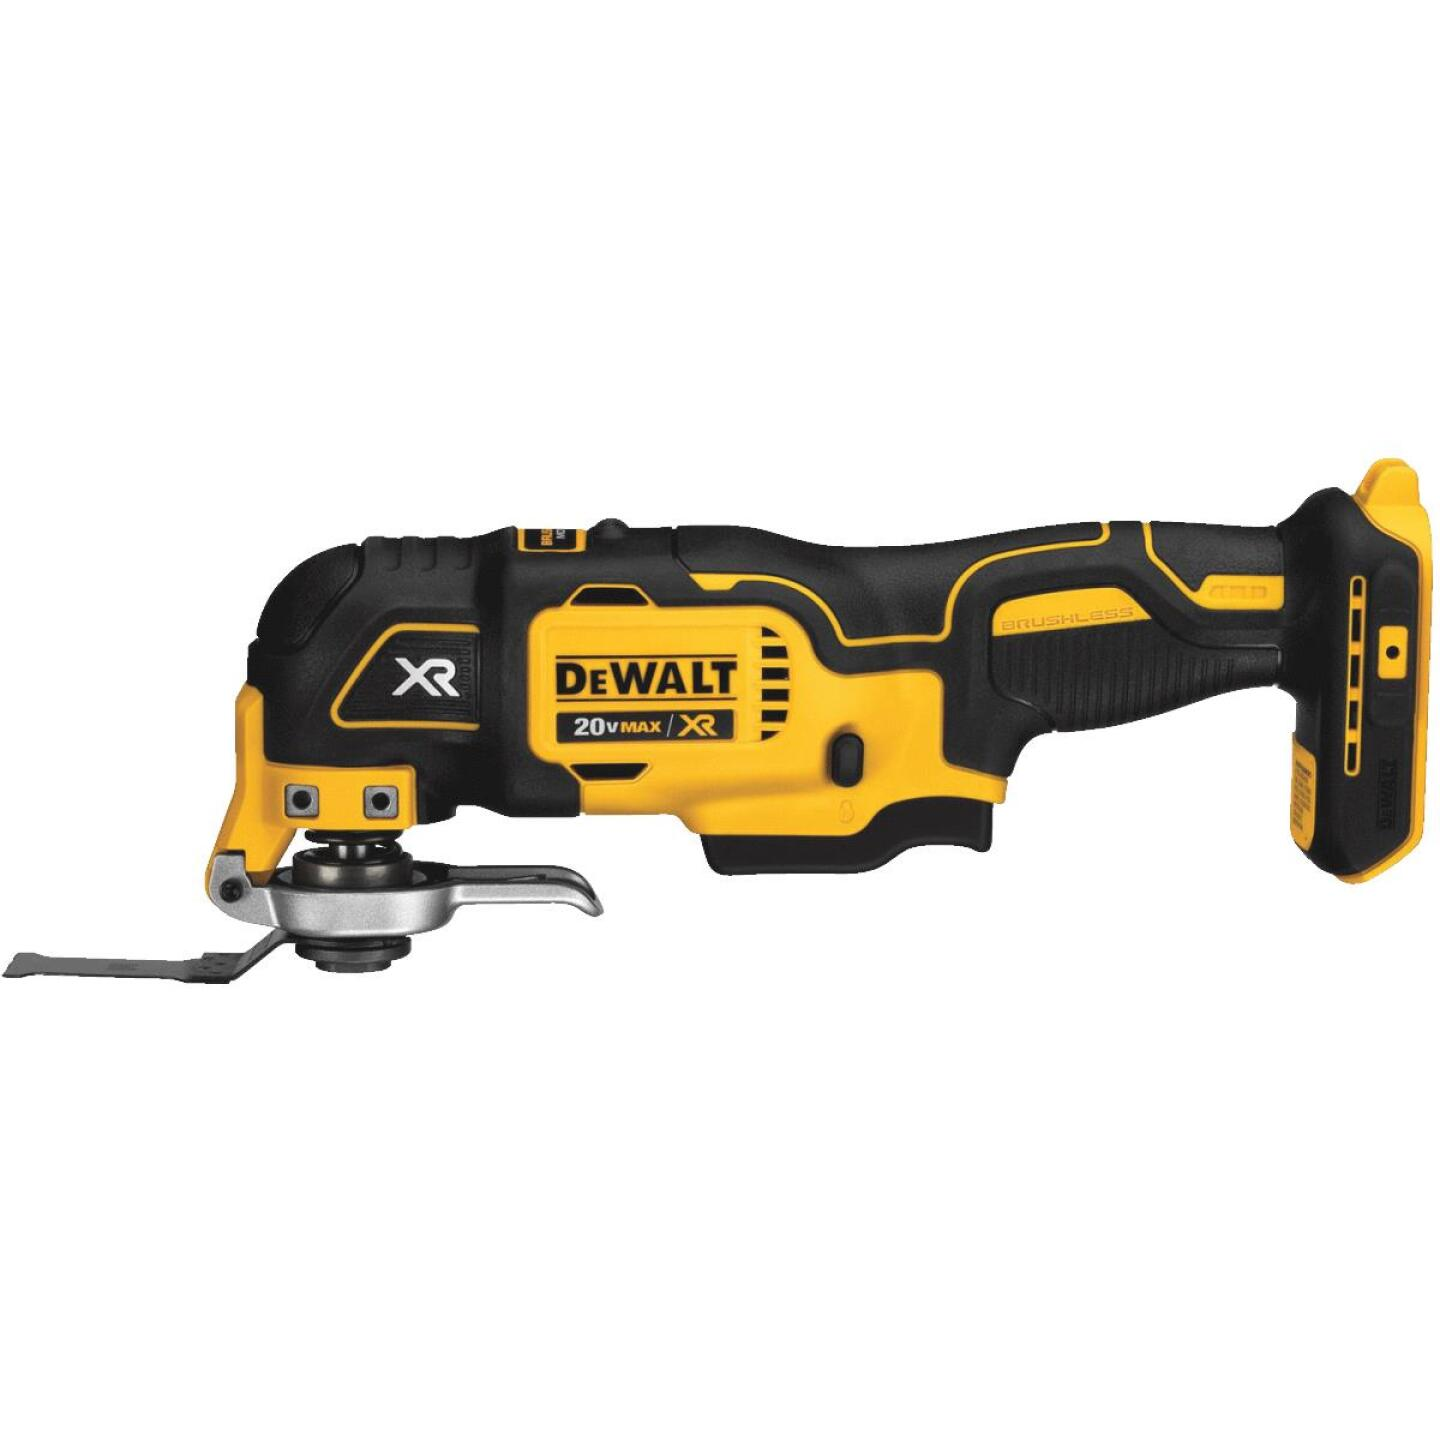 DeWalt 20 Volt MAX XR Lithium-Ion Brushless Cordless Oscillating Tool (Bare Tool) Image 1